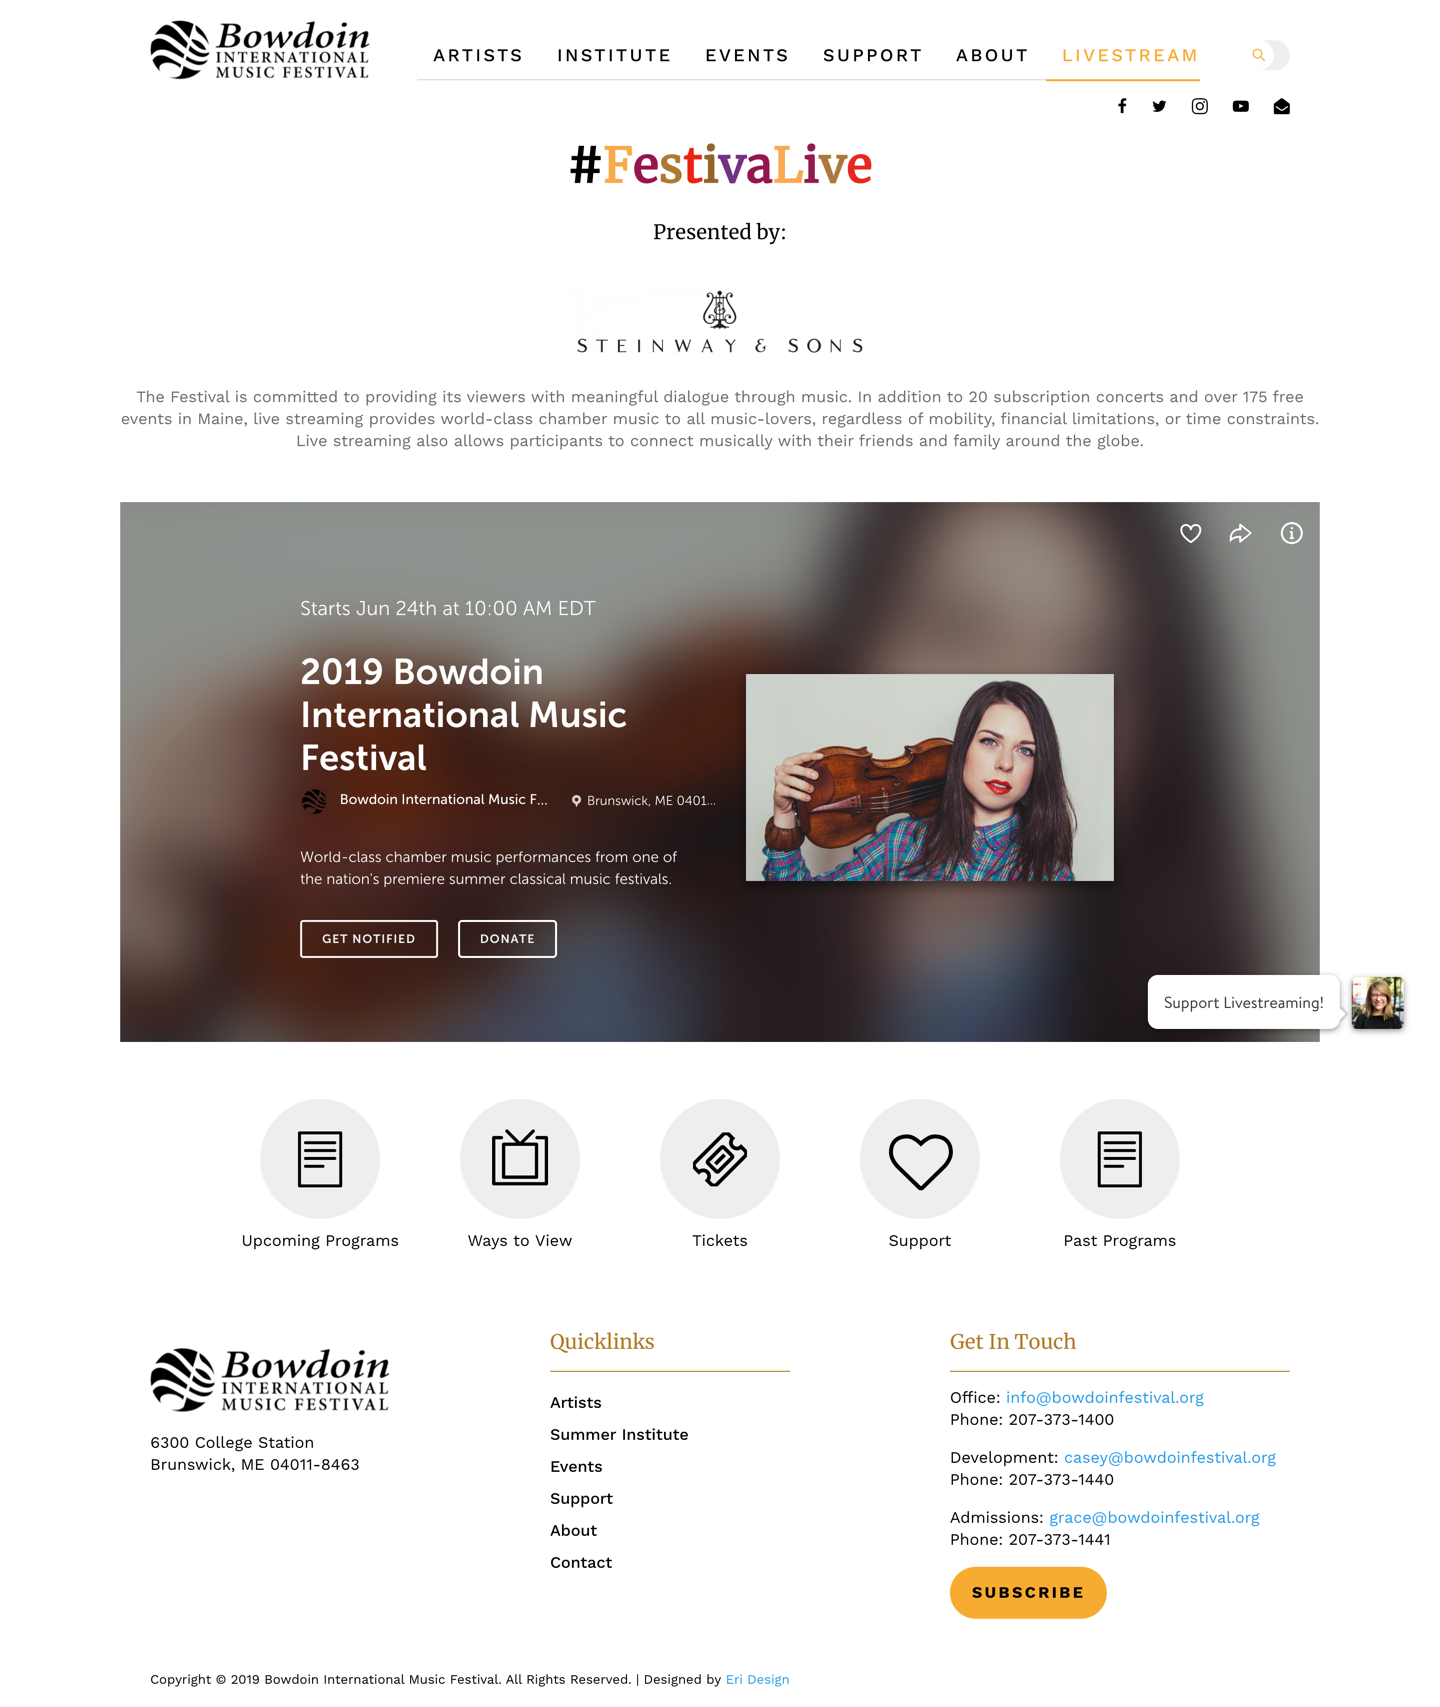 Bowdoin Music Festival live streaming page